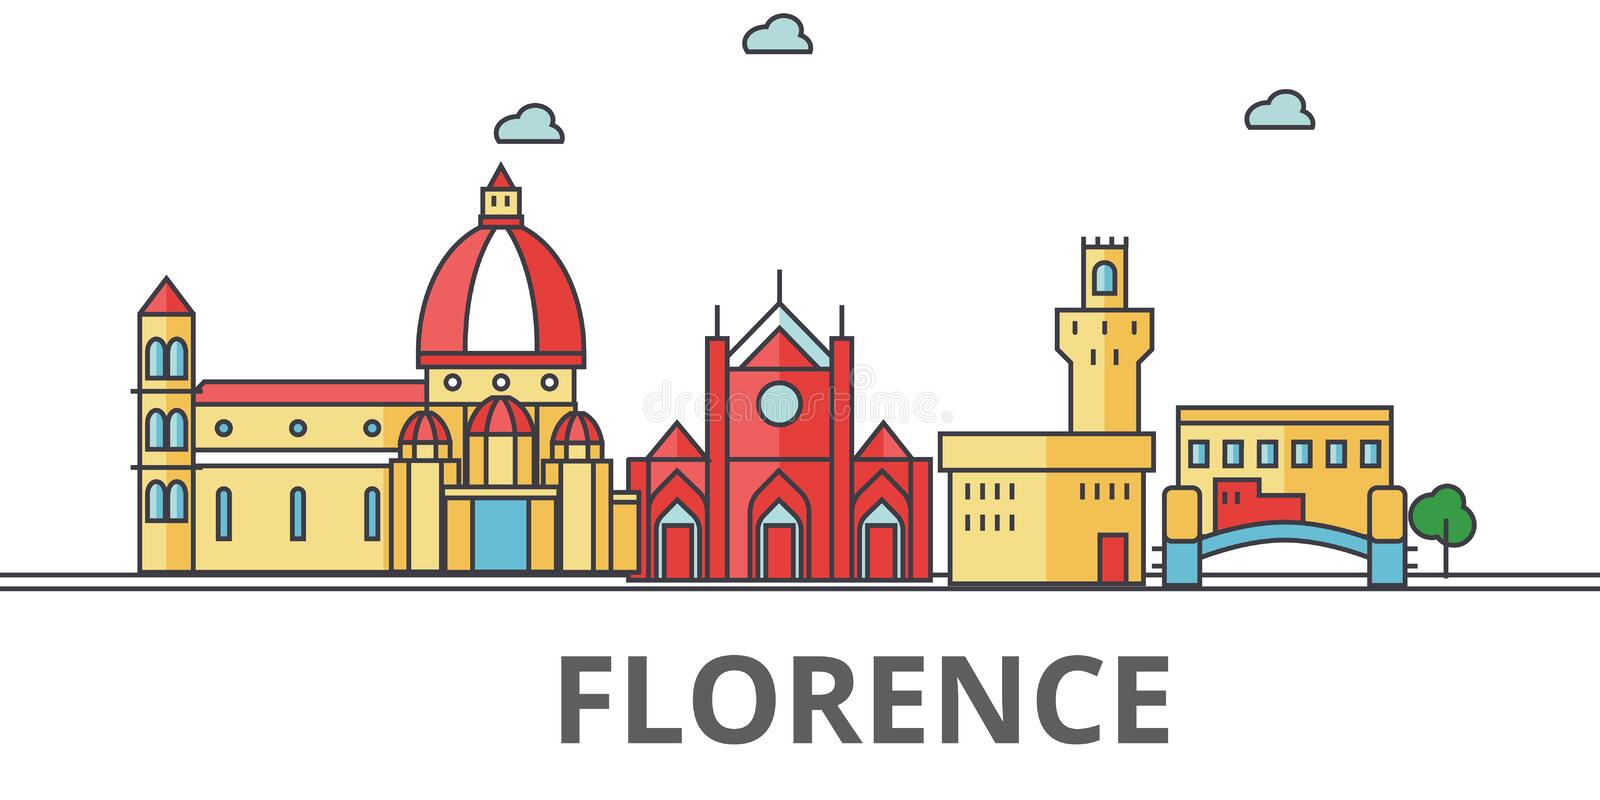 De stadshorizon van Florence stock illustratie